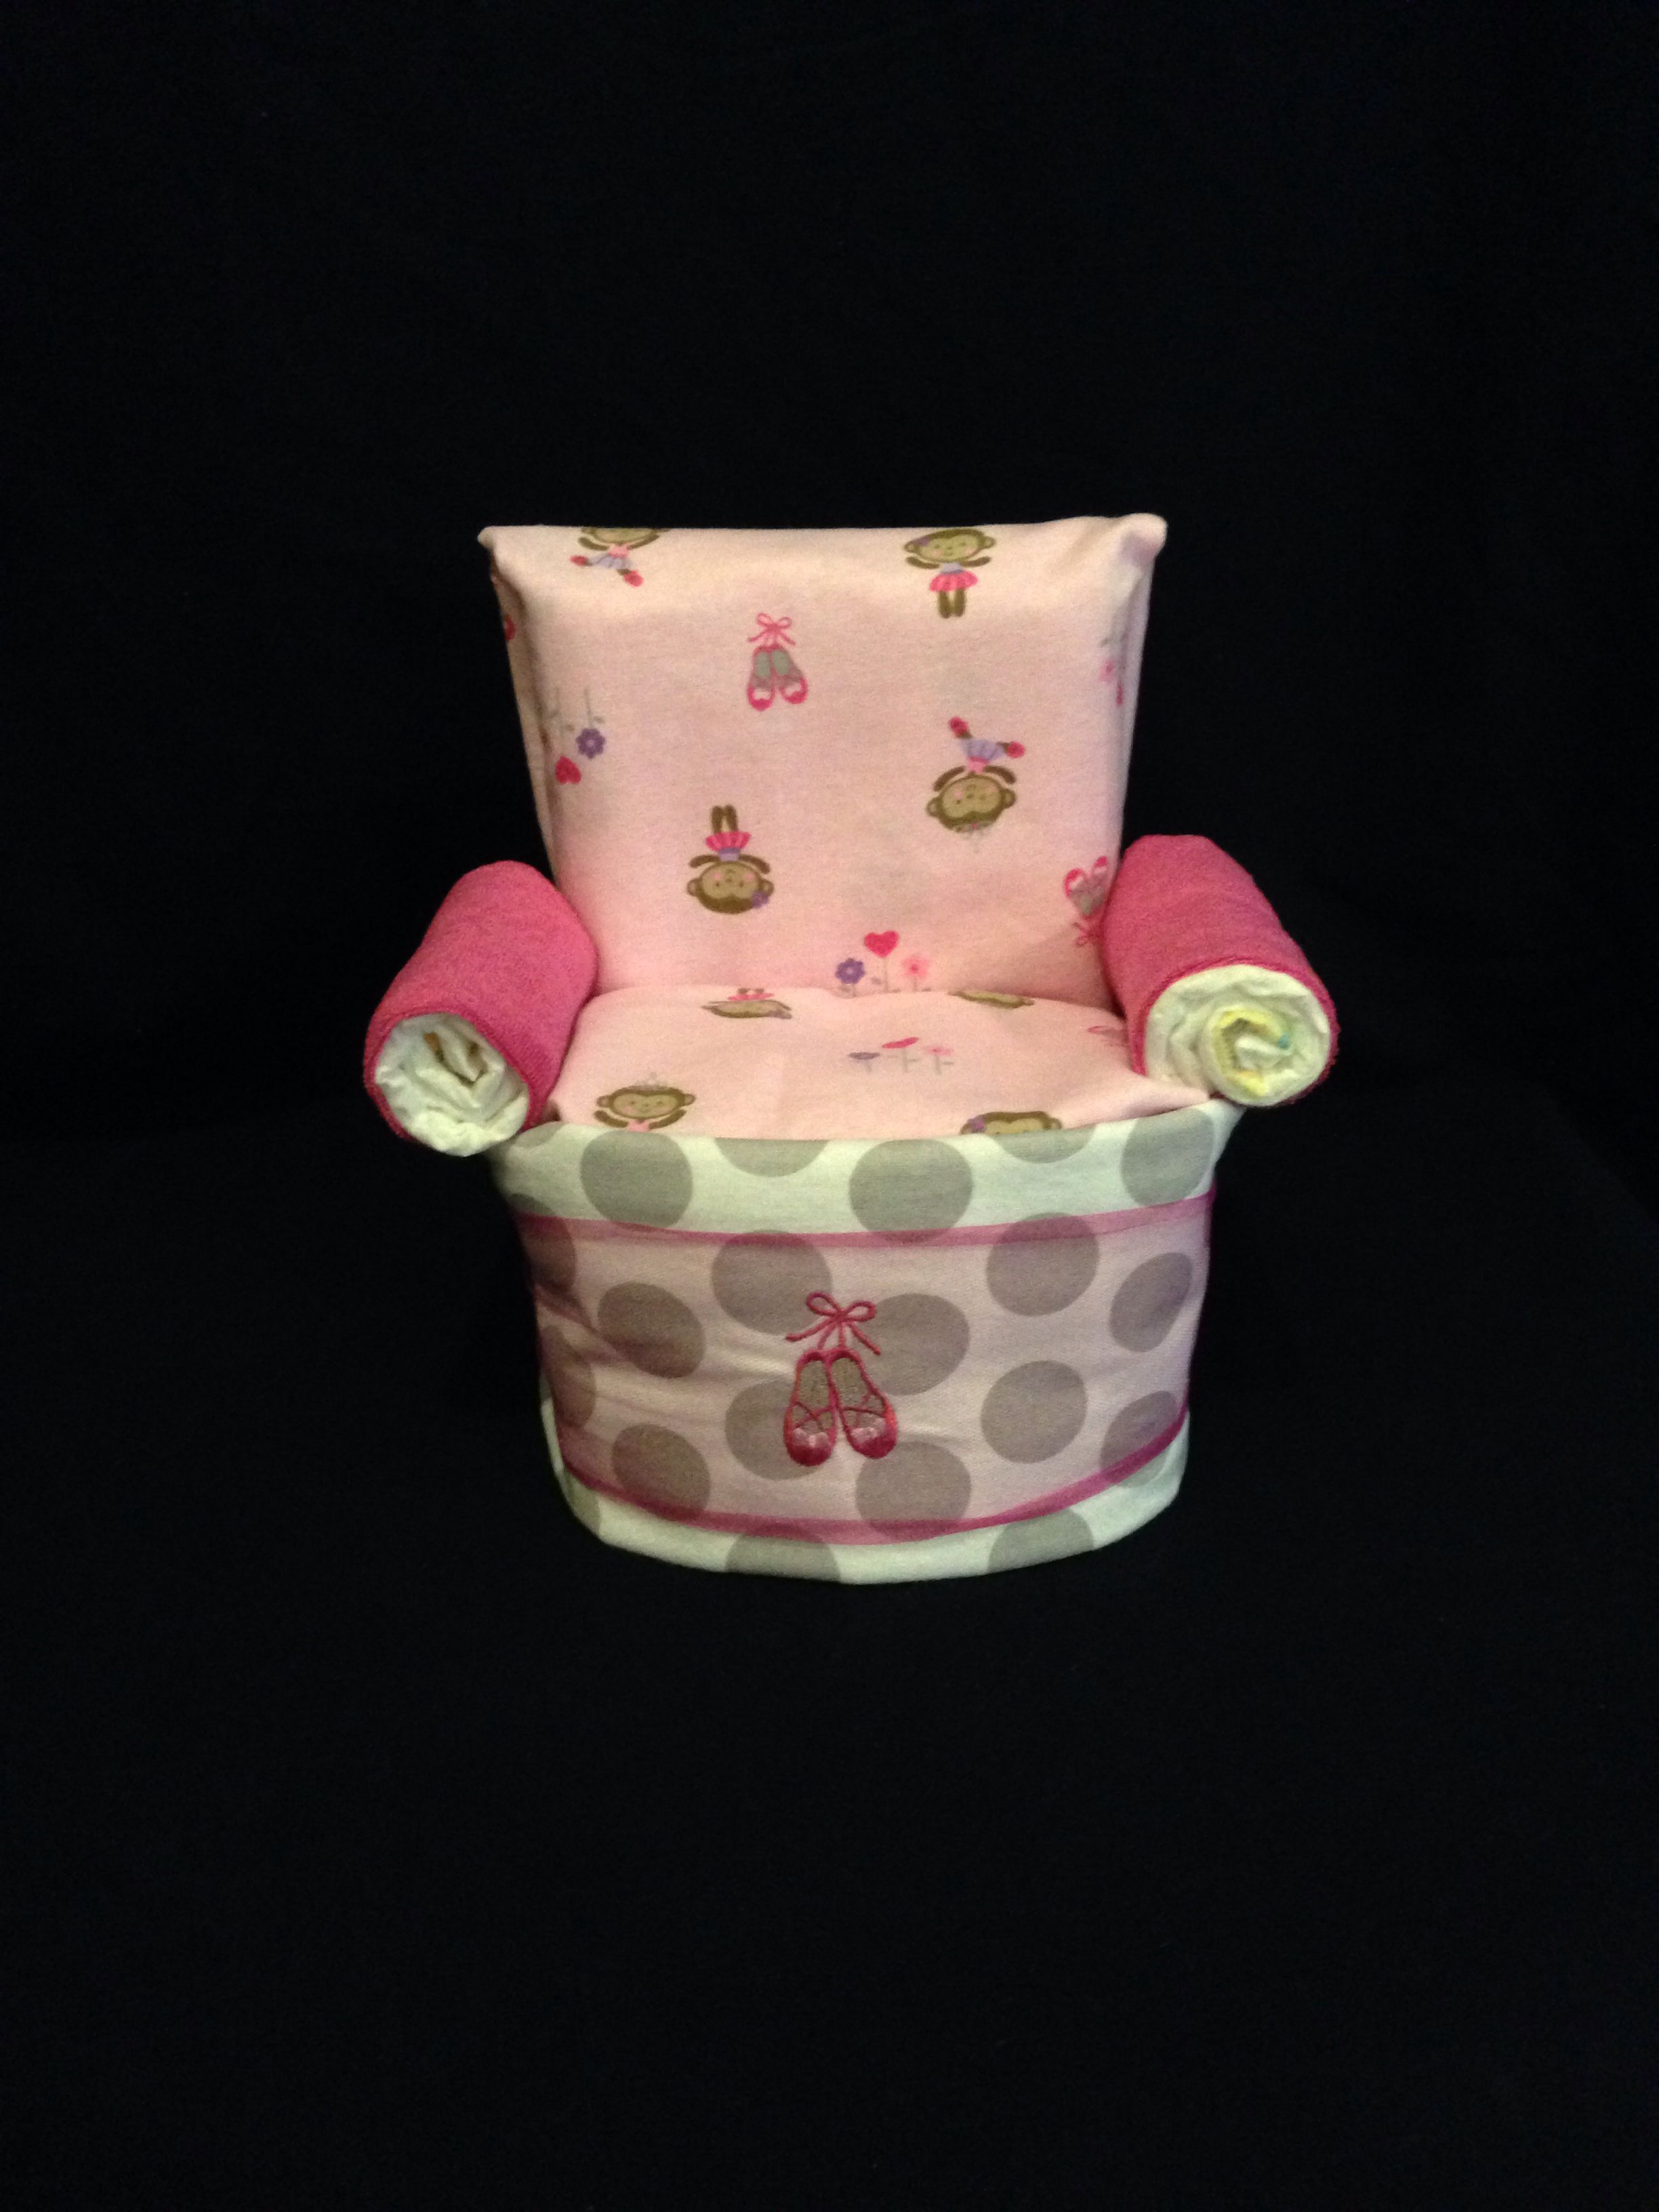 Chair Diaper Cake For Baby Girl